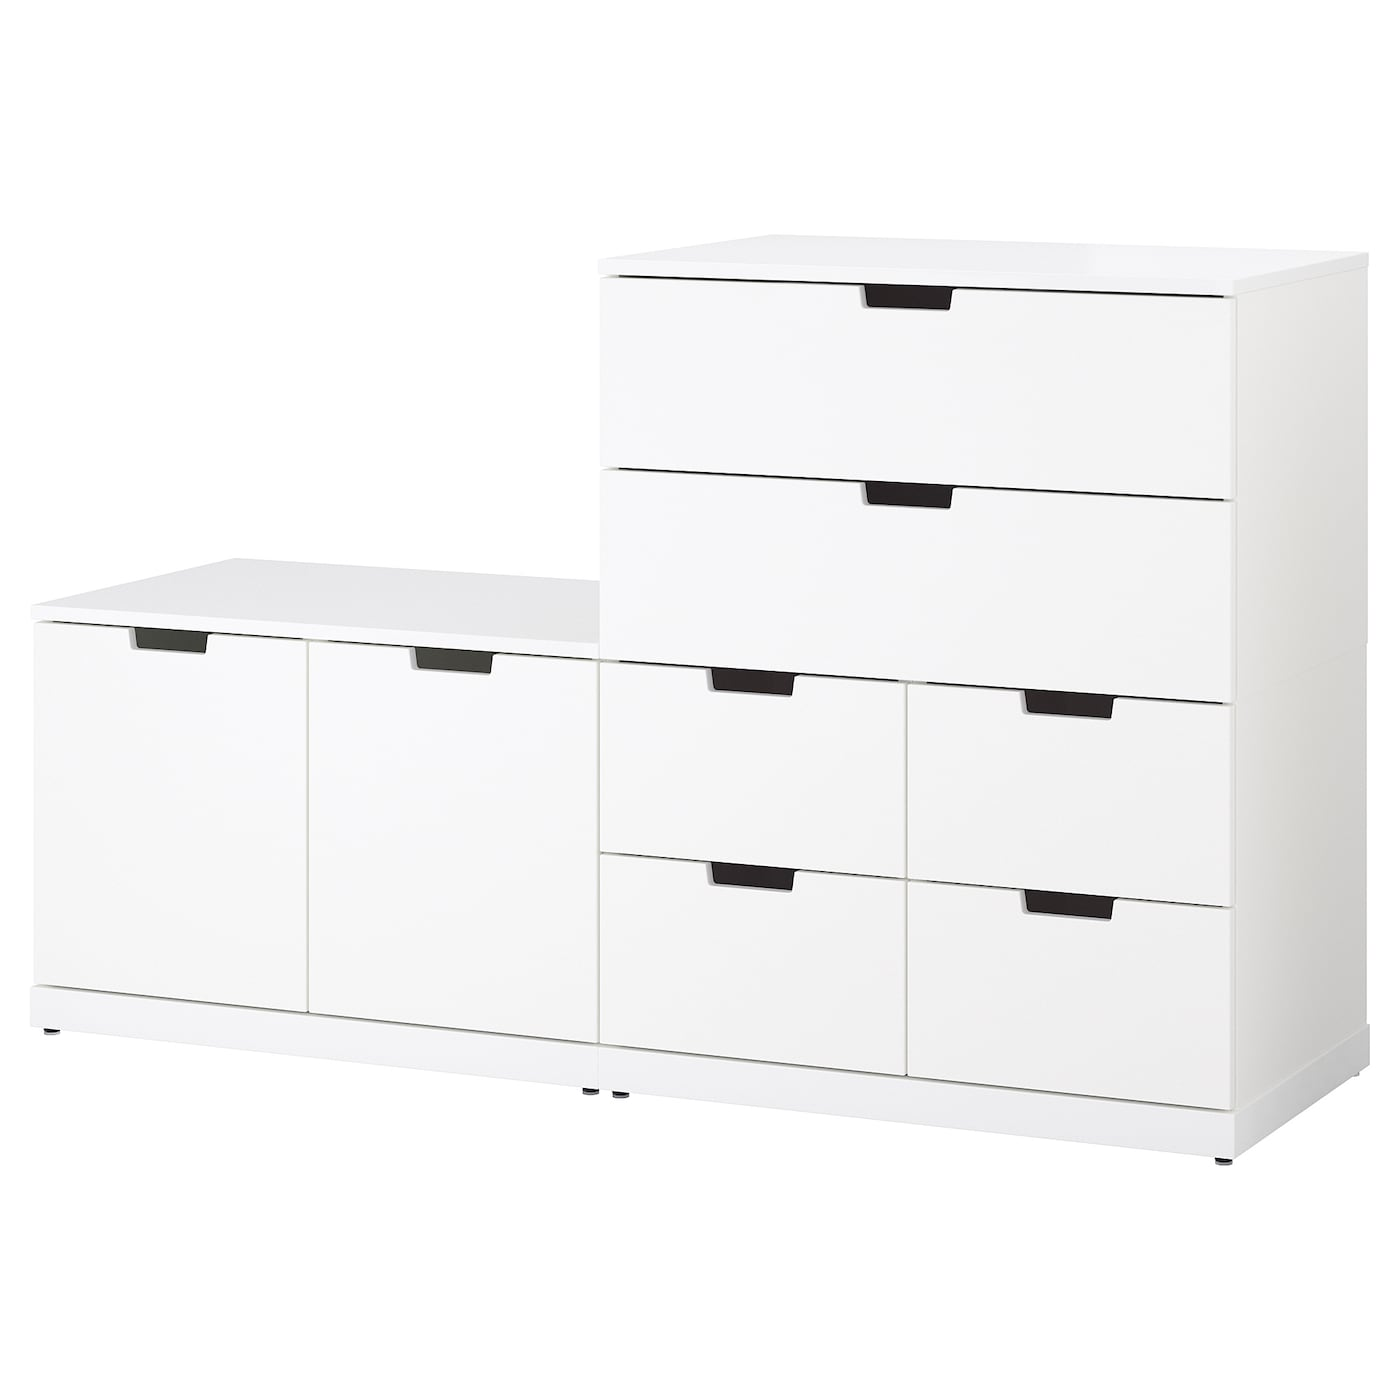 IKEA NORDLI chest of 8 drawers